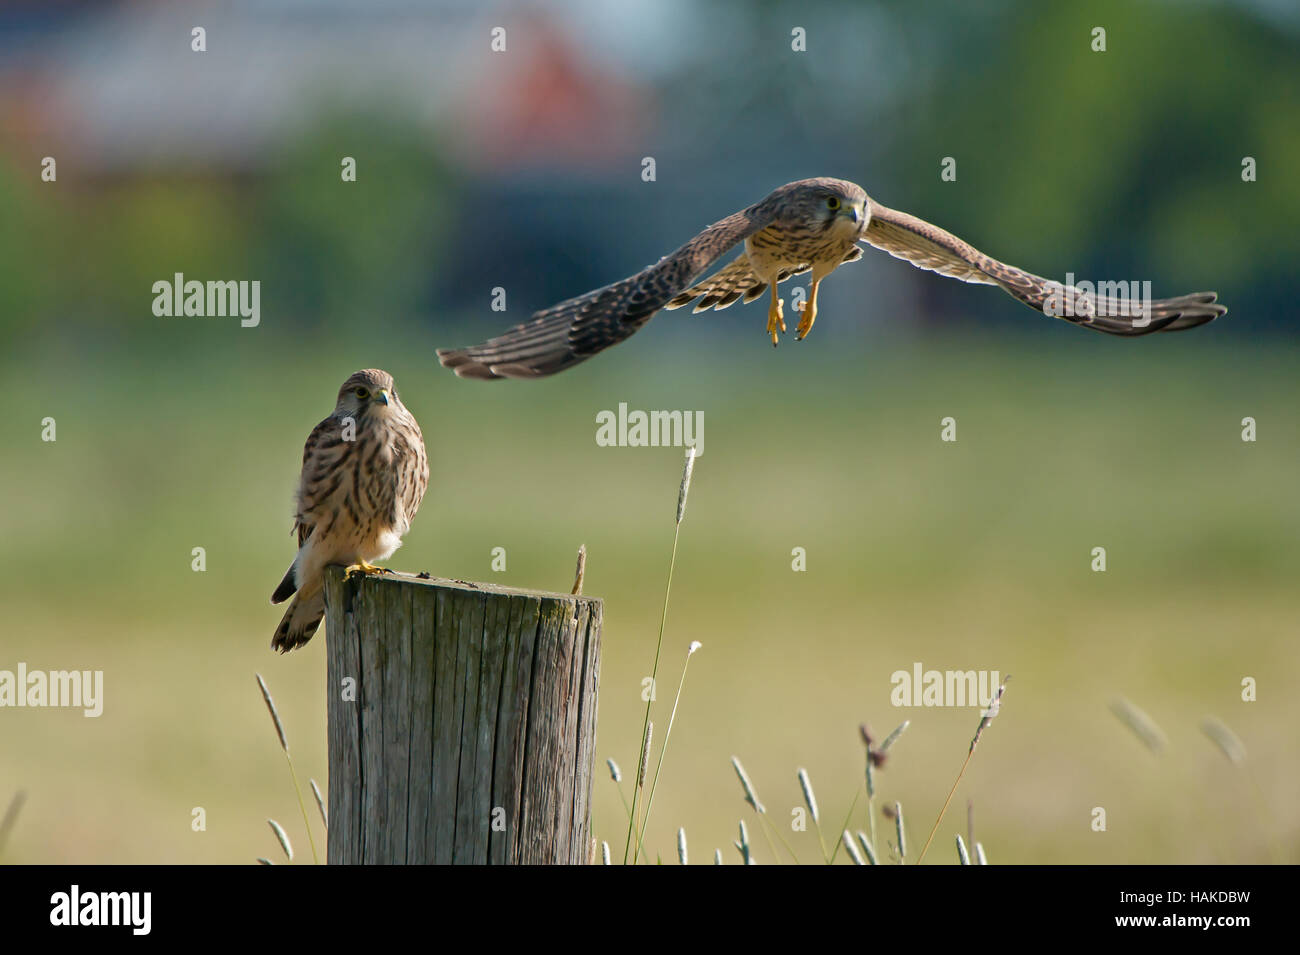 Two juvenile kestrels (Falco tinnunculus) on top of a pole where one is just leaving with a green bokeh in the background - Stock Image